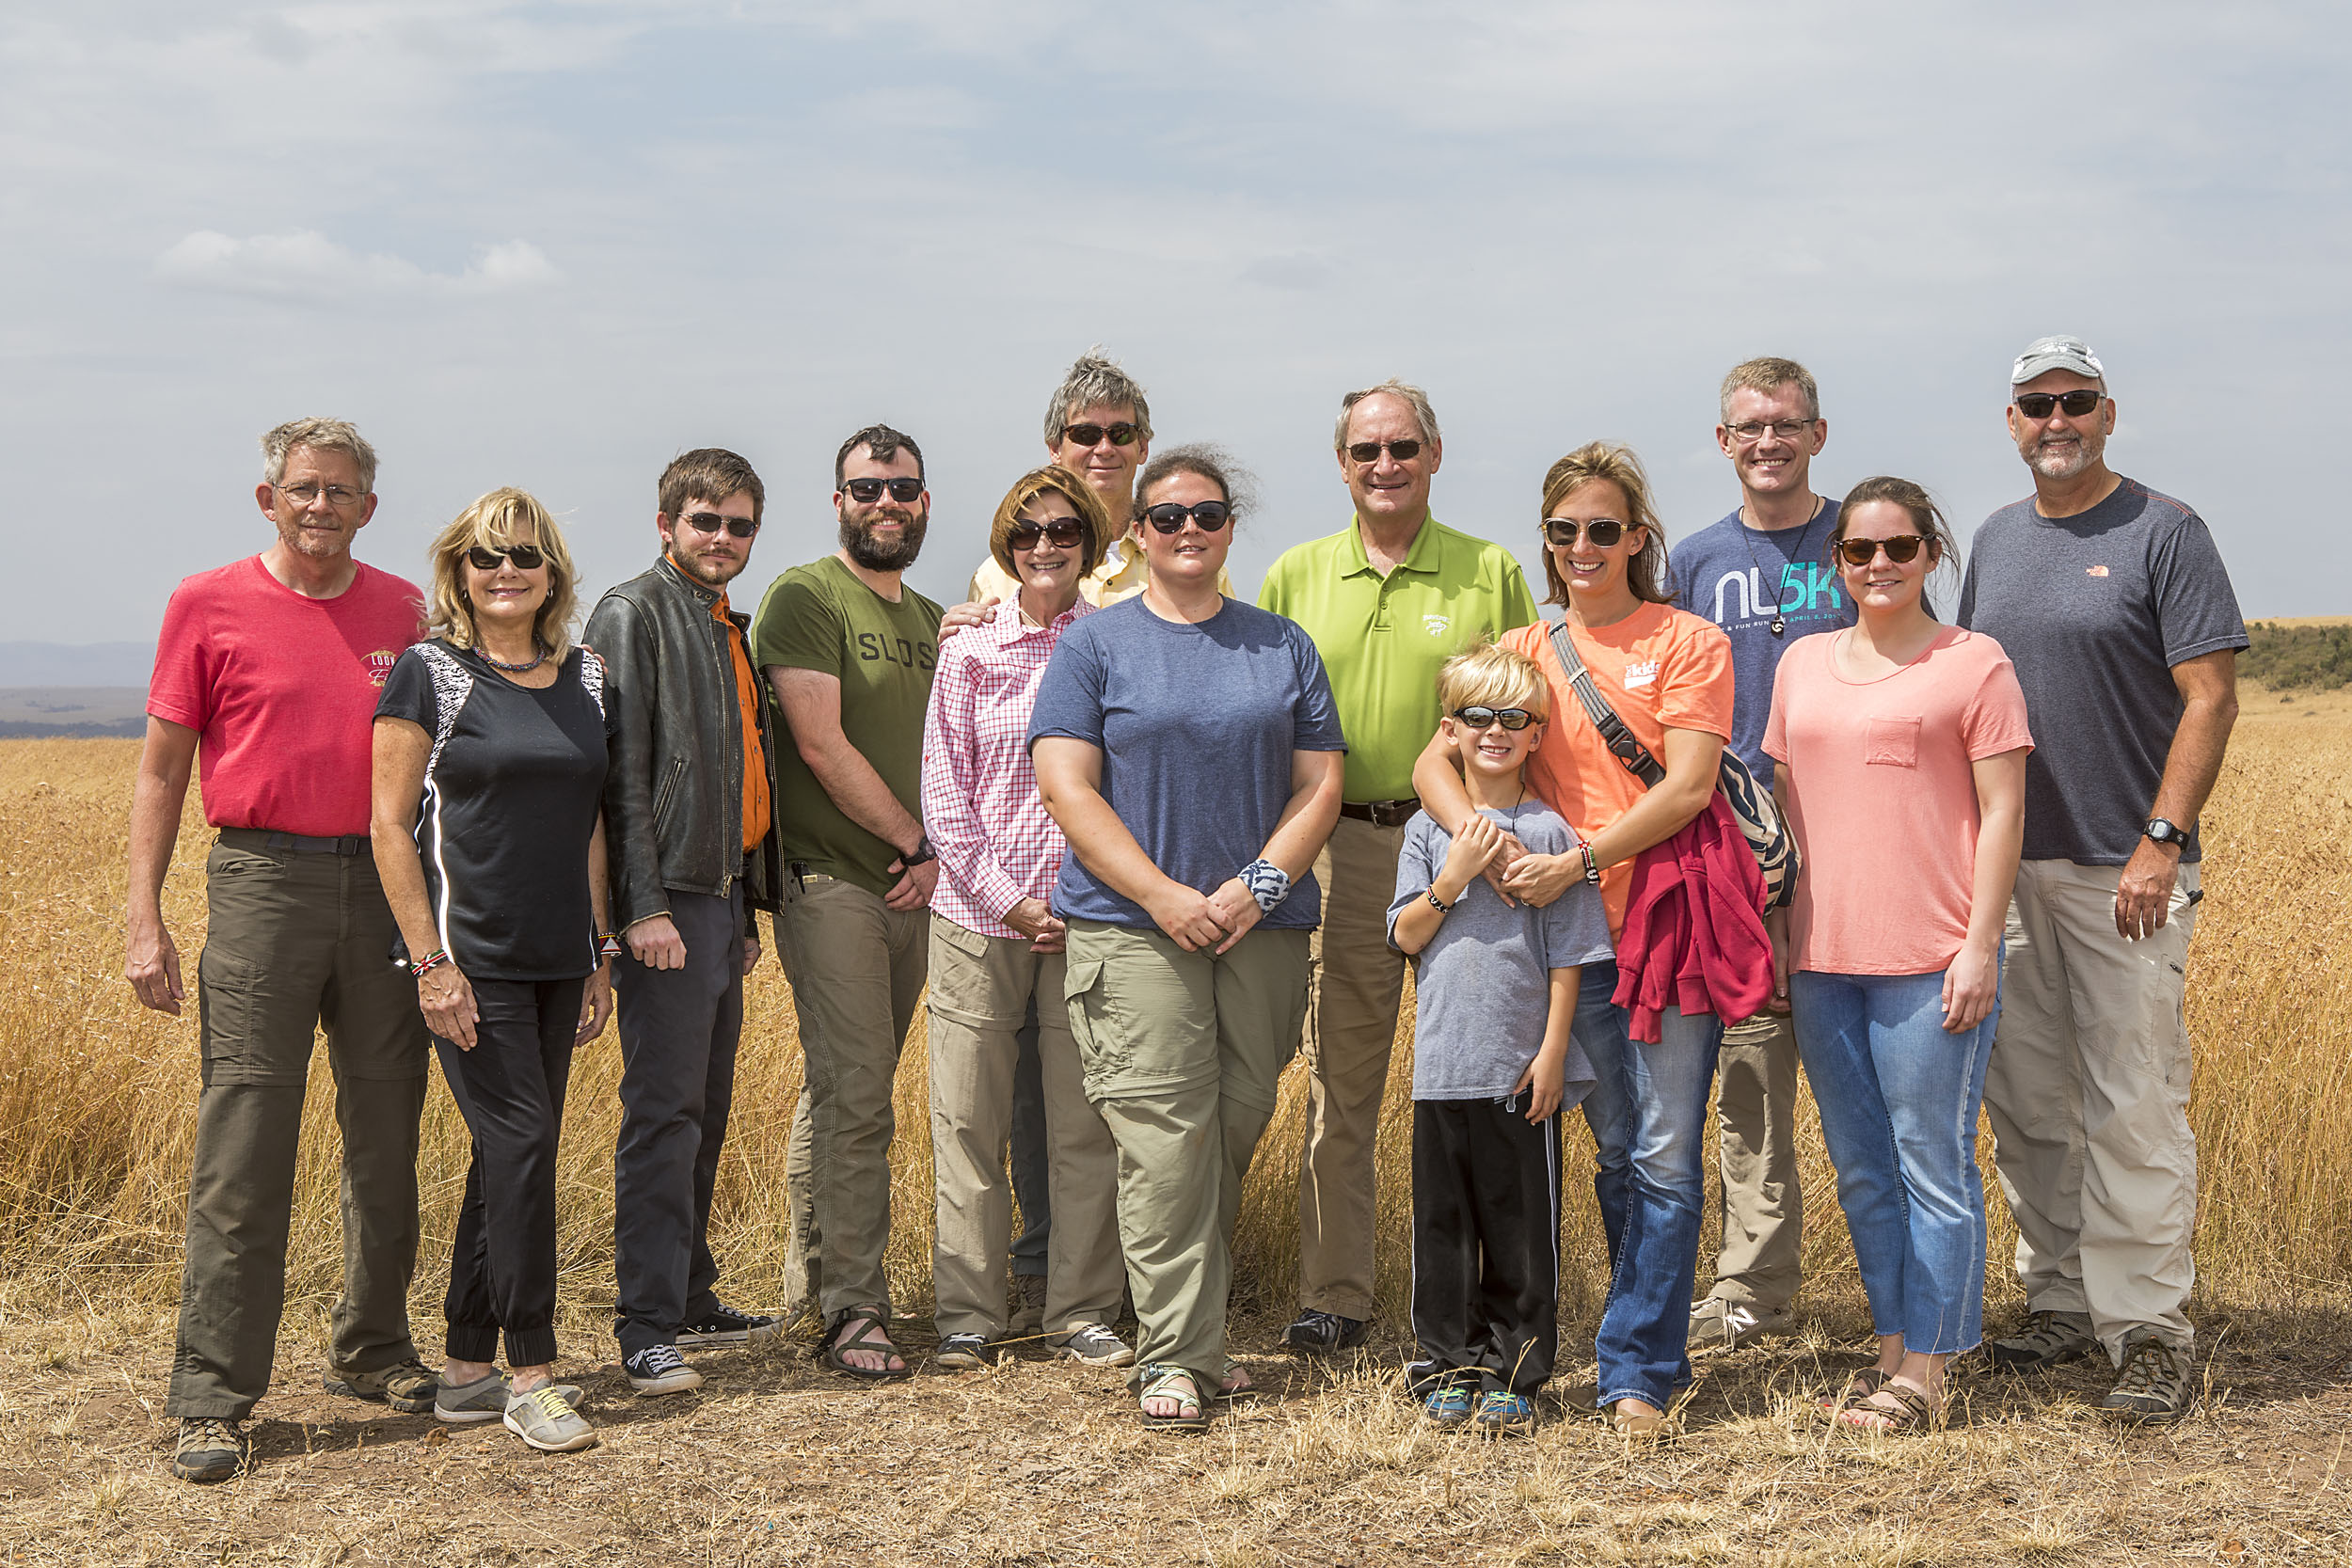 (L to R) Robin and Rhonda Taylor, Chris Taylor, Ryan Strickland, Becky and Carl Grimmett, Erin Hamer, Roger Crew, Hudson, Becky and Dr. Jeremy Rogers, Nicole Jessen, Ron Burkett